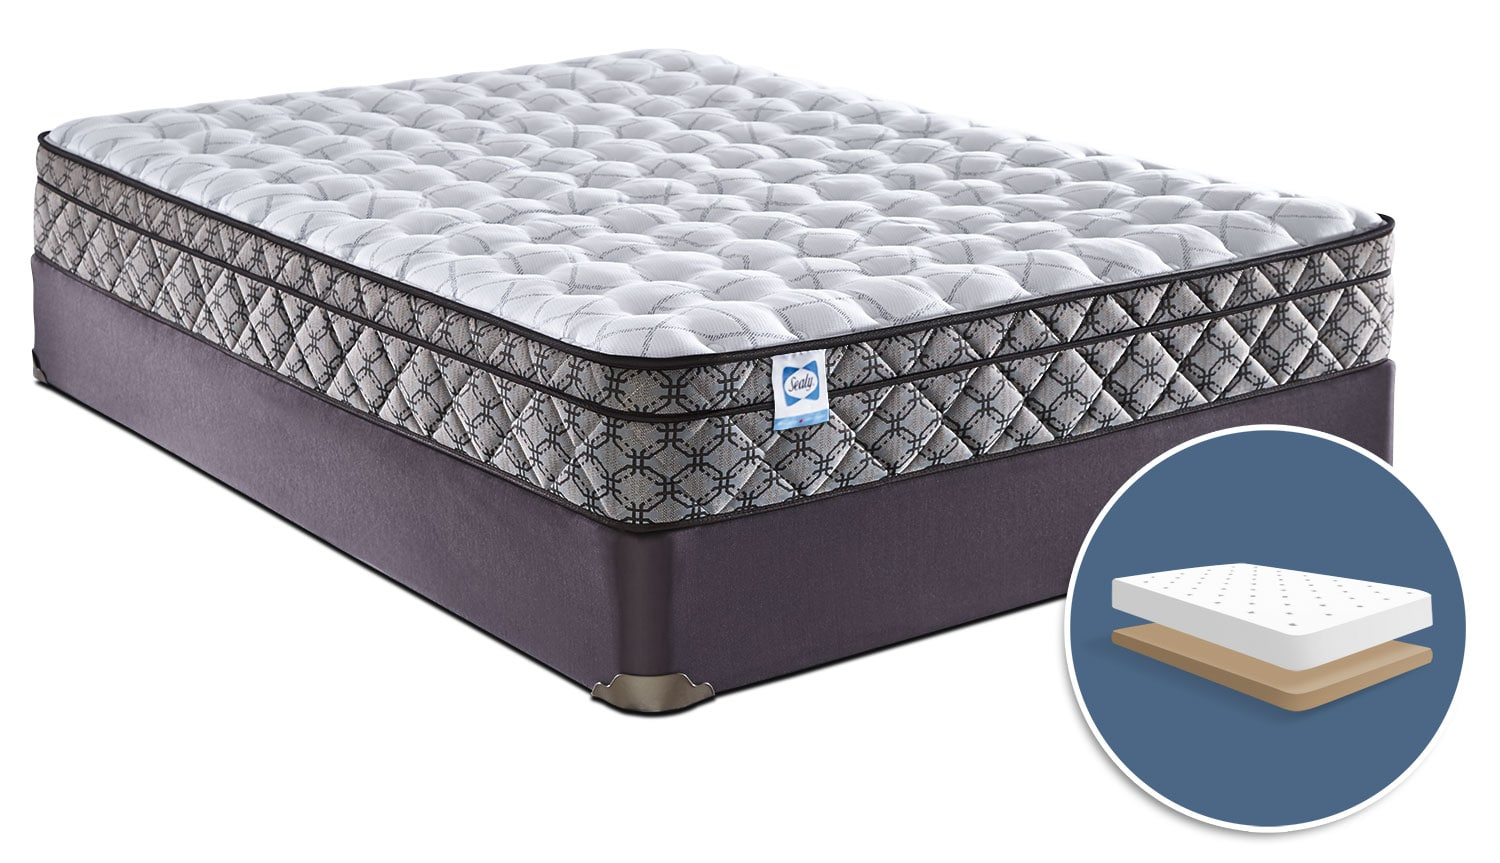 Sealy Bellcroft Euro-Top Firm Full Low-Profile Mattress Set